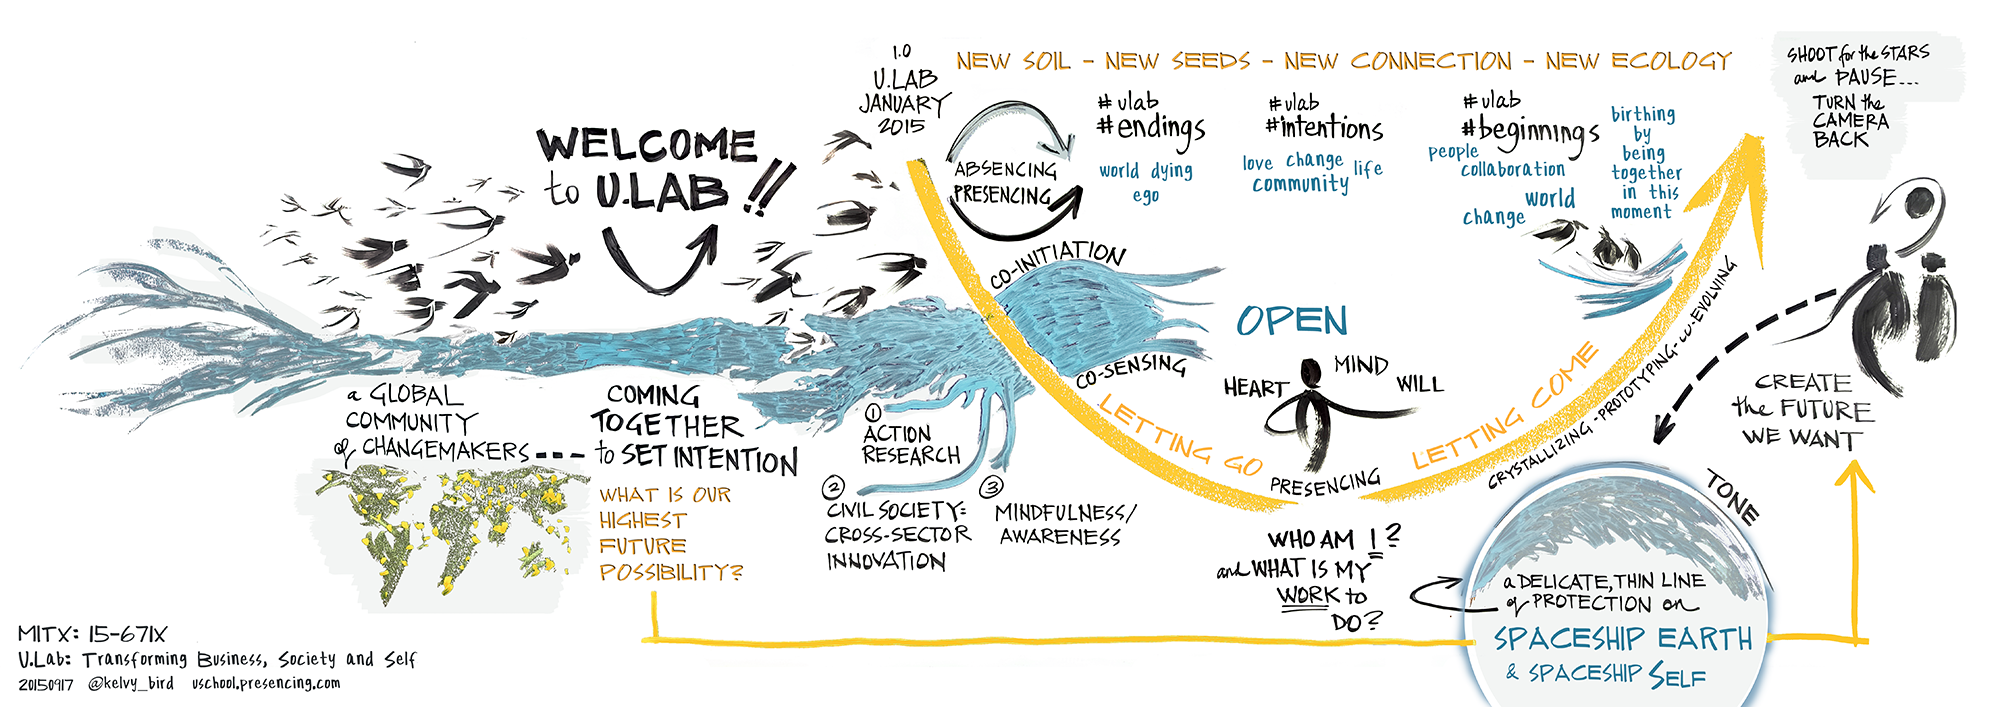 Rich picture courtesy of Kelvy Bird, MIT ULab